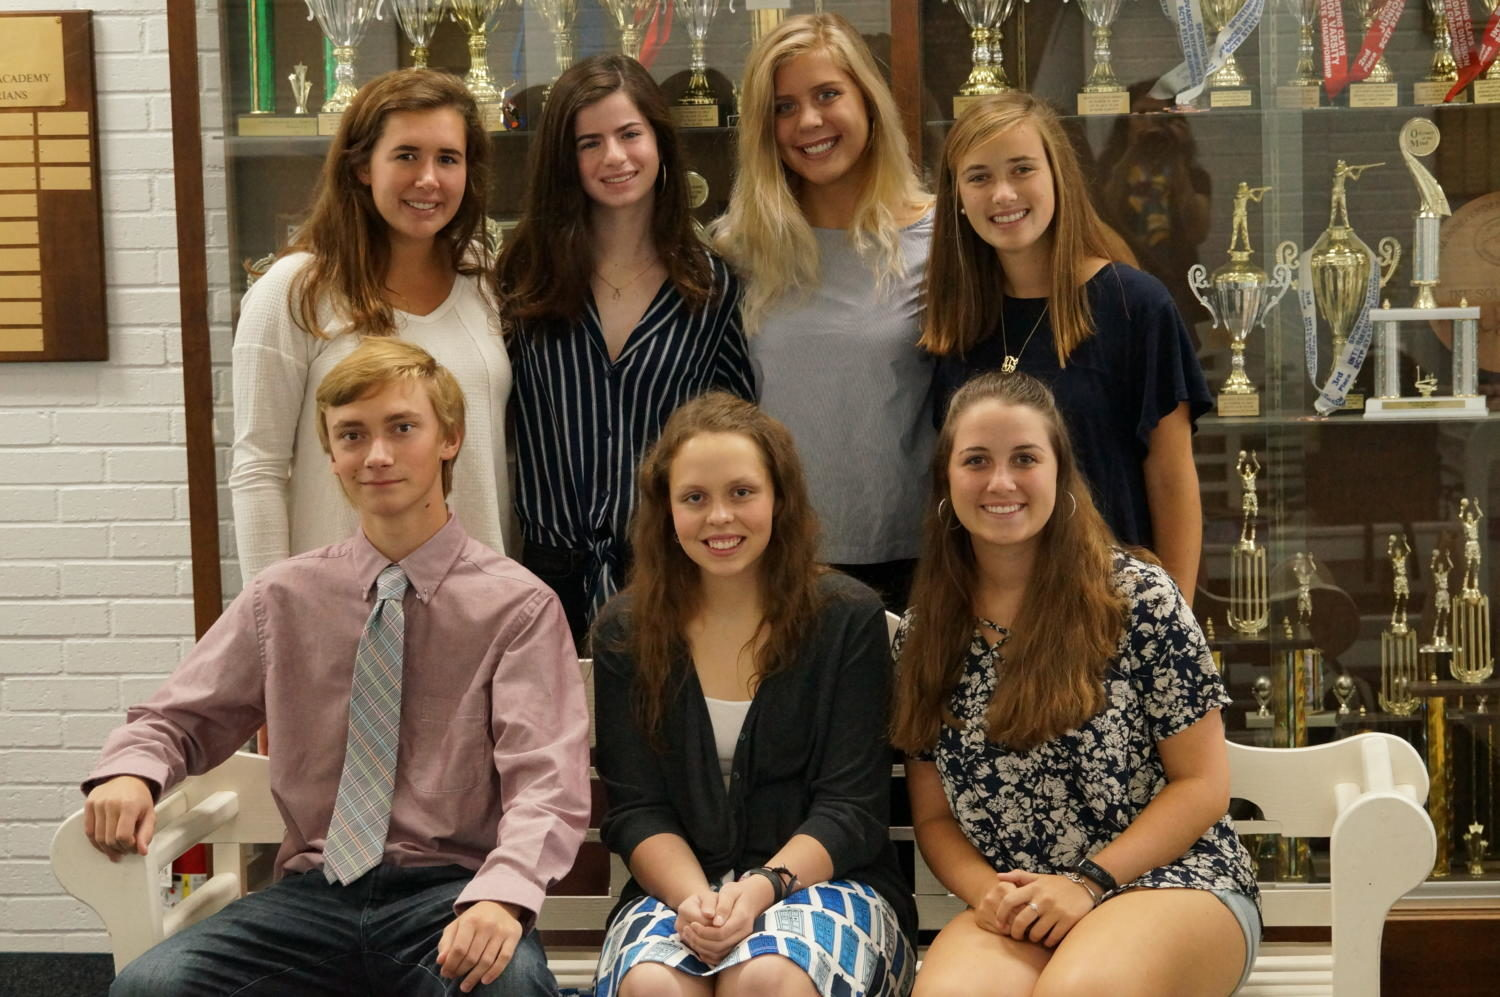 Top row (juniors; left to right): Haven Ross, Georgia Morris, Virginia Wooten, Ann Sumner Thorp Seated (seniors; left to right): Elias Moore, Holly Brantley, Lauren Seale